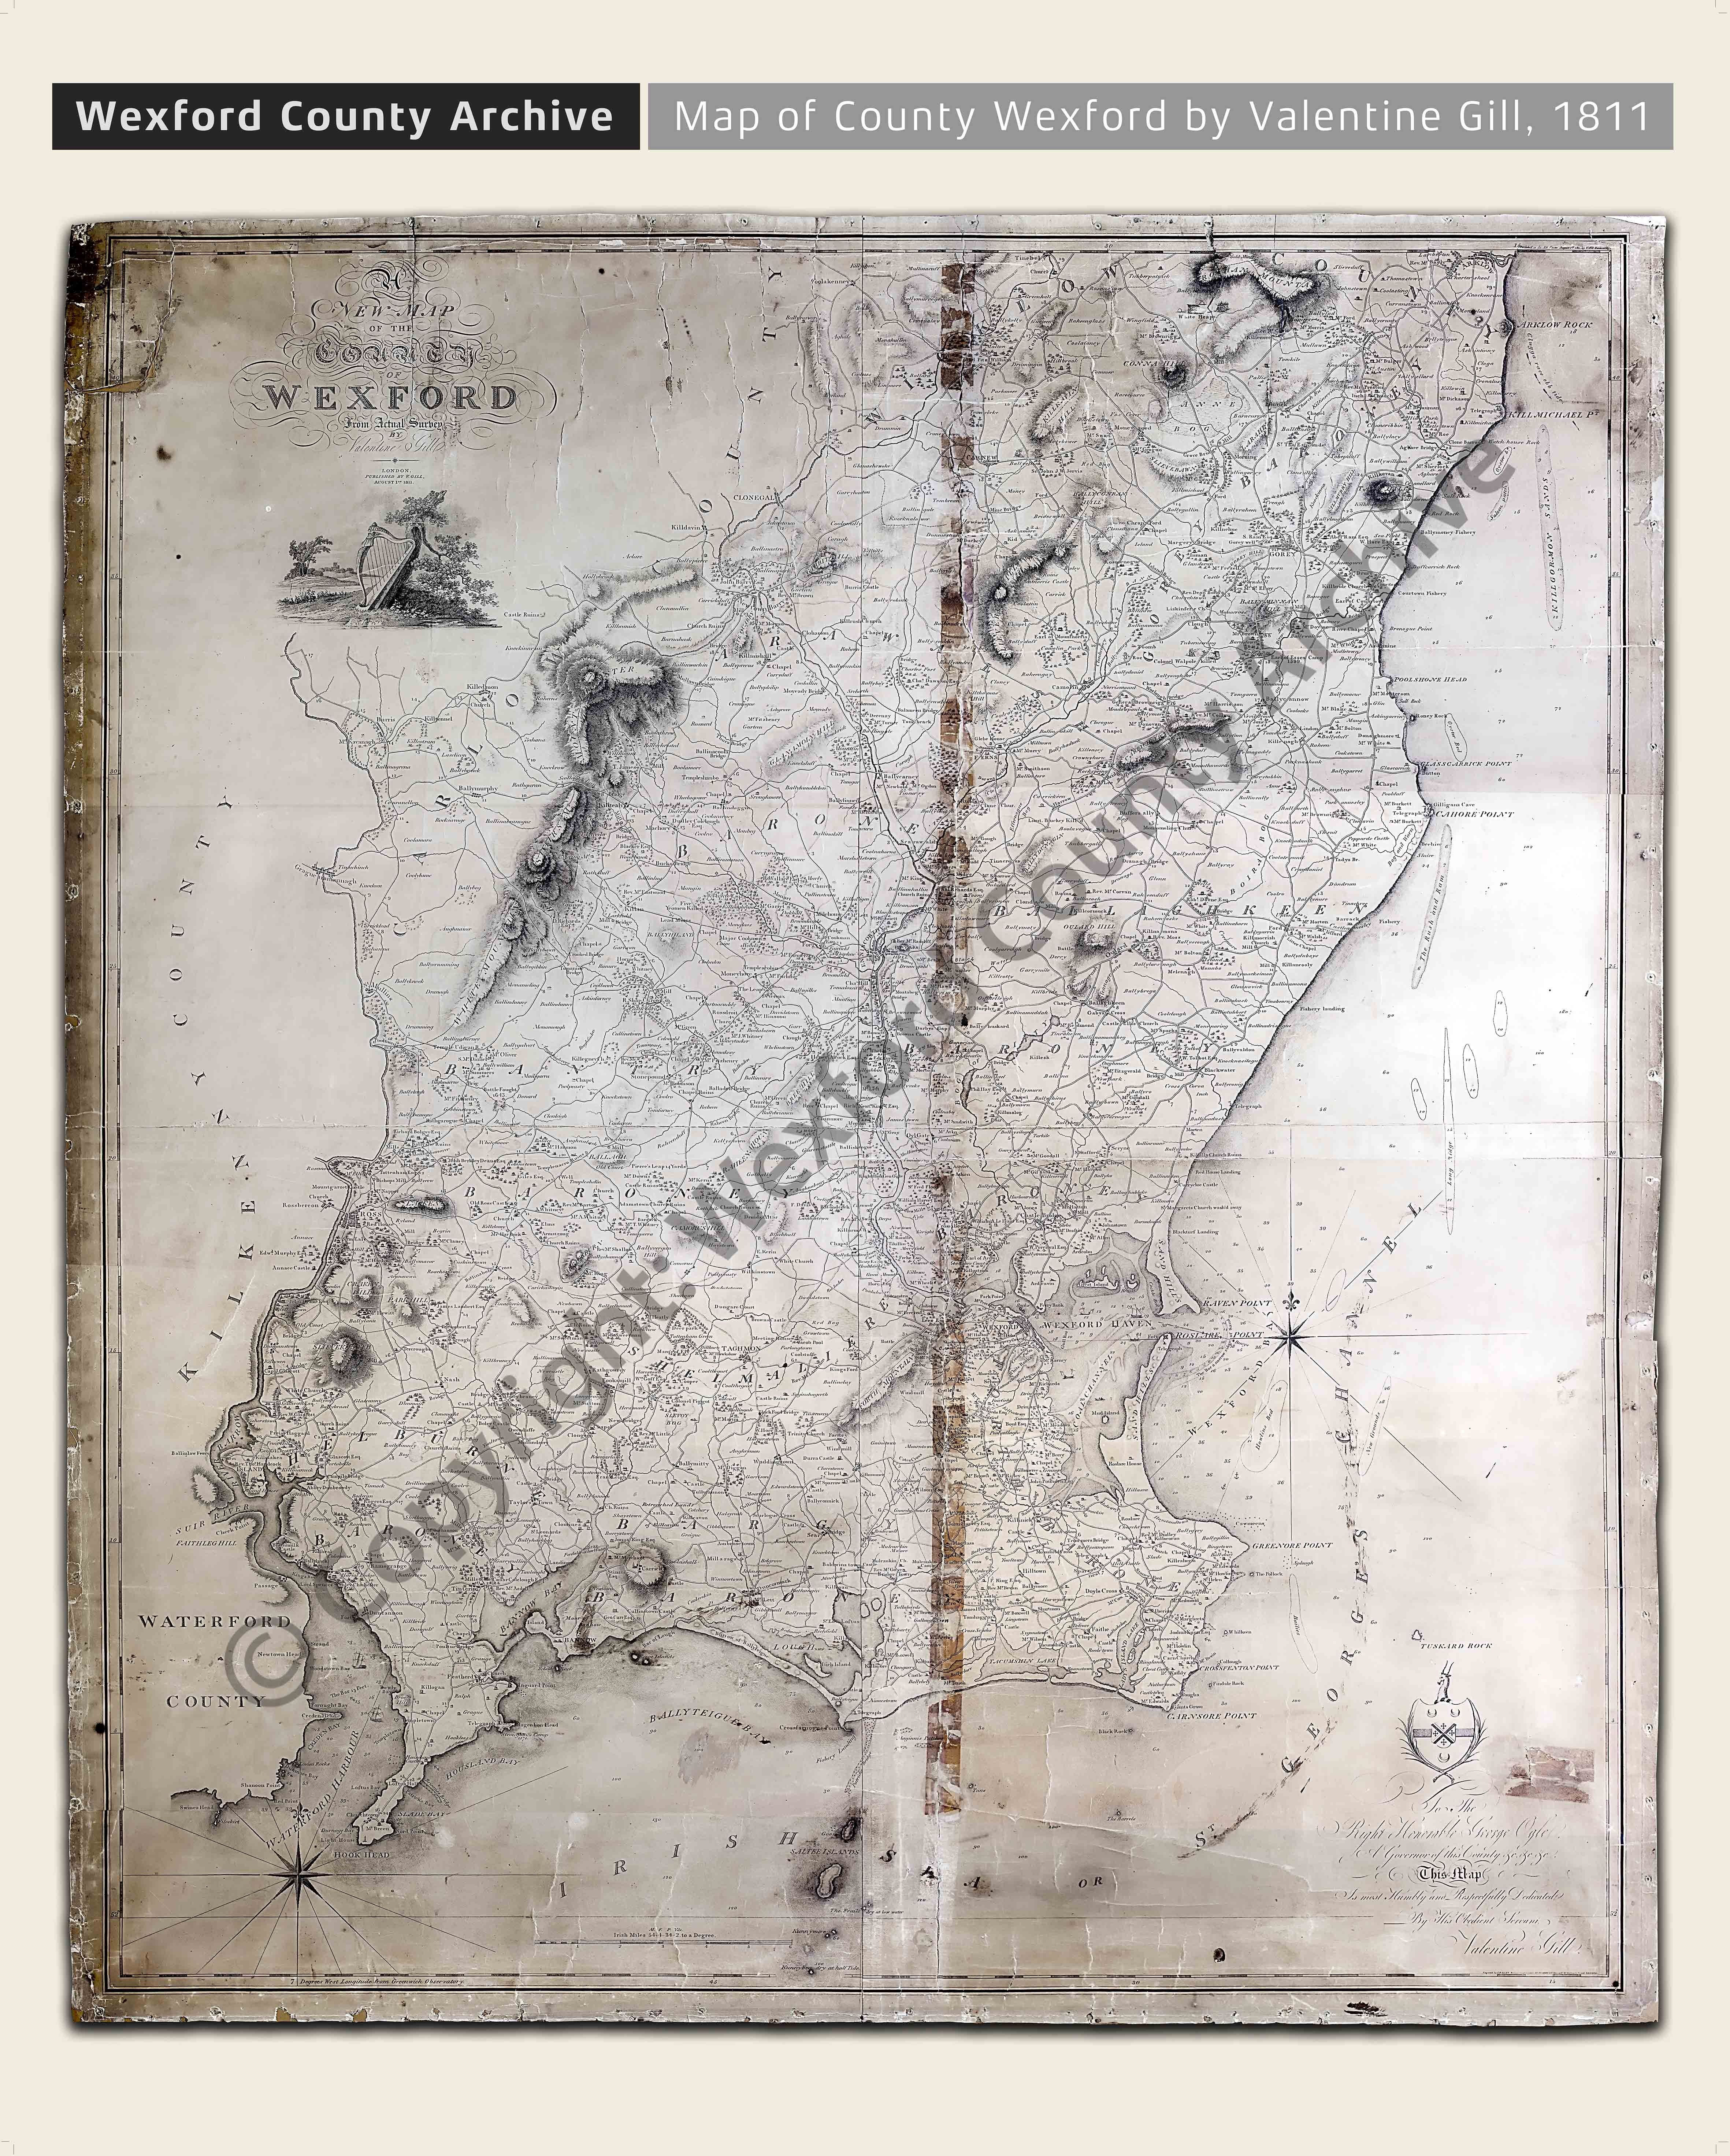 Valentine Gill Map Of Co Wexford 1811 Wexford County Archive